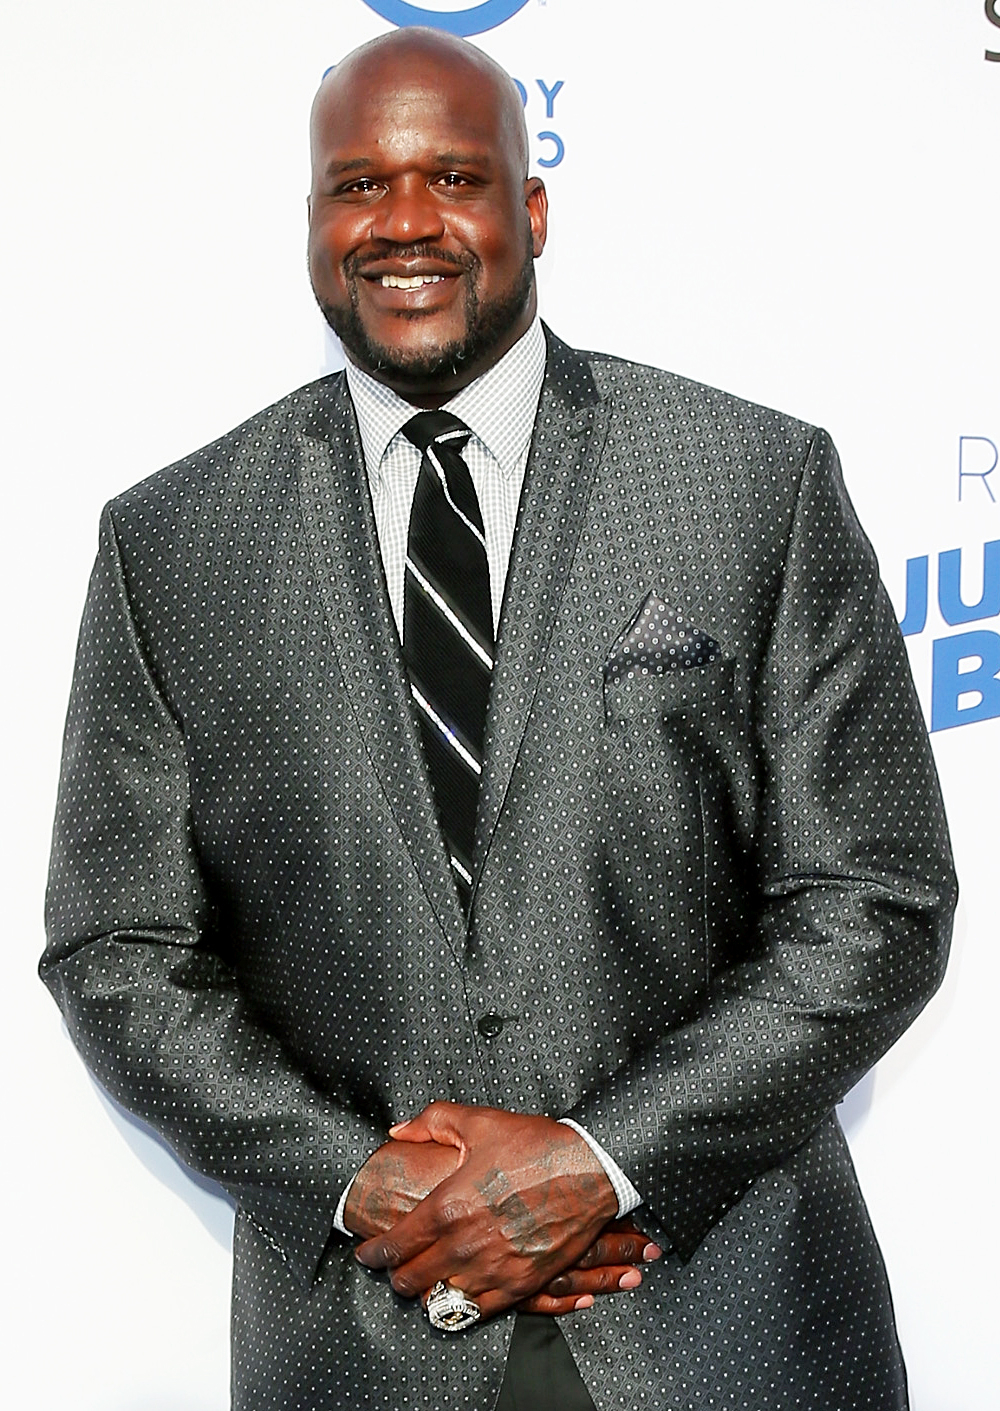 Shaquille O Neal Announces Plan to Run for Sheriff in 2020